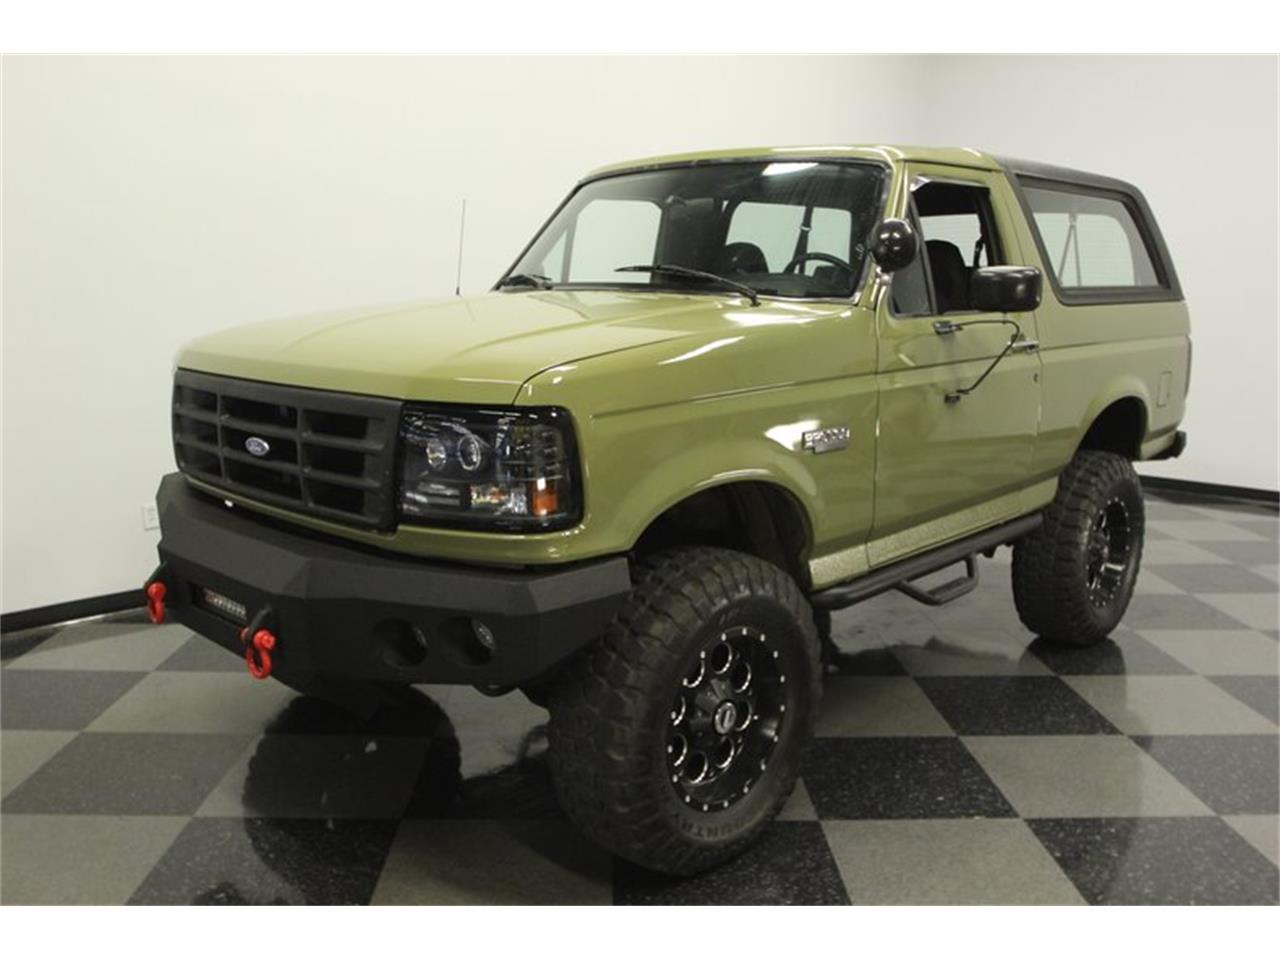 1996 Ford Bronco for sale in Lutz, FL – photo 20